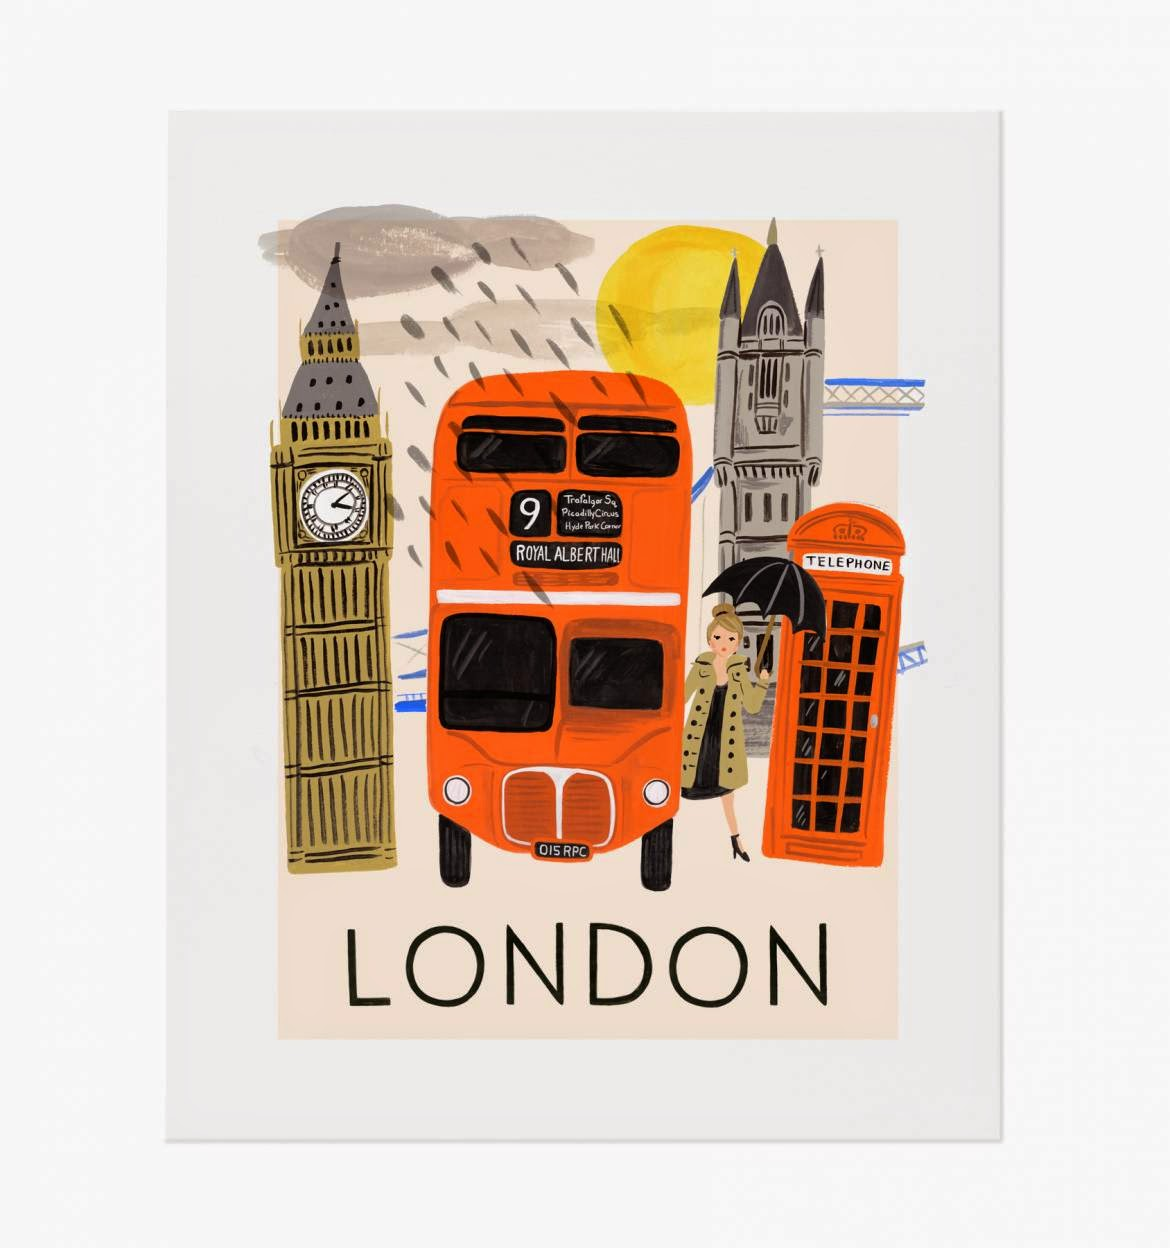 https://riflepaperco.com/shop/travel-london-illustrated-art-print/